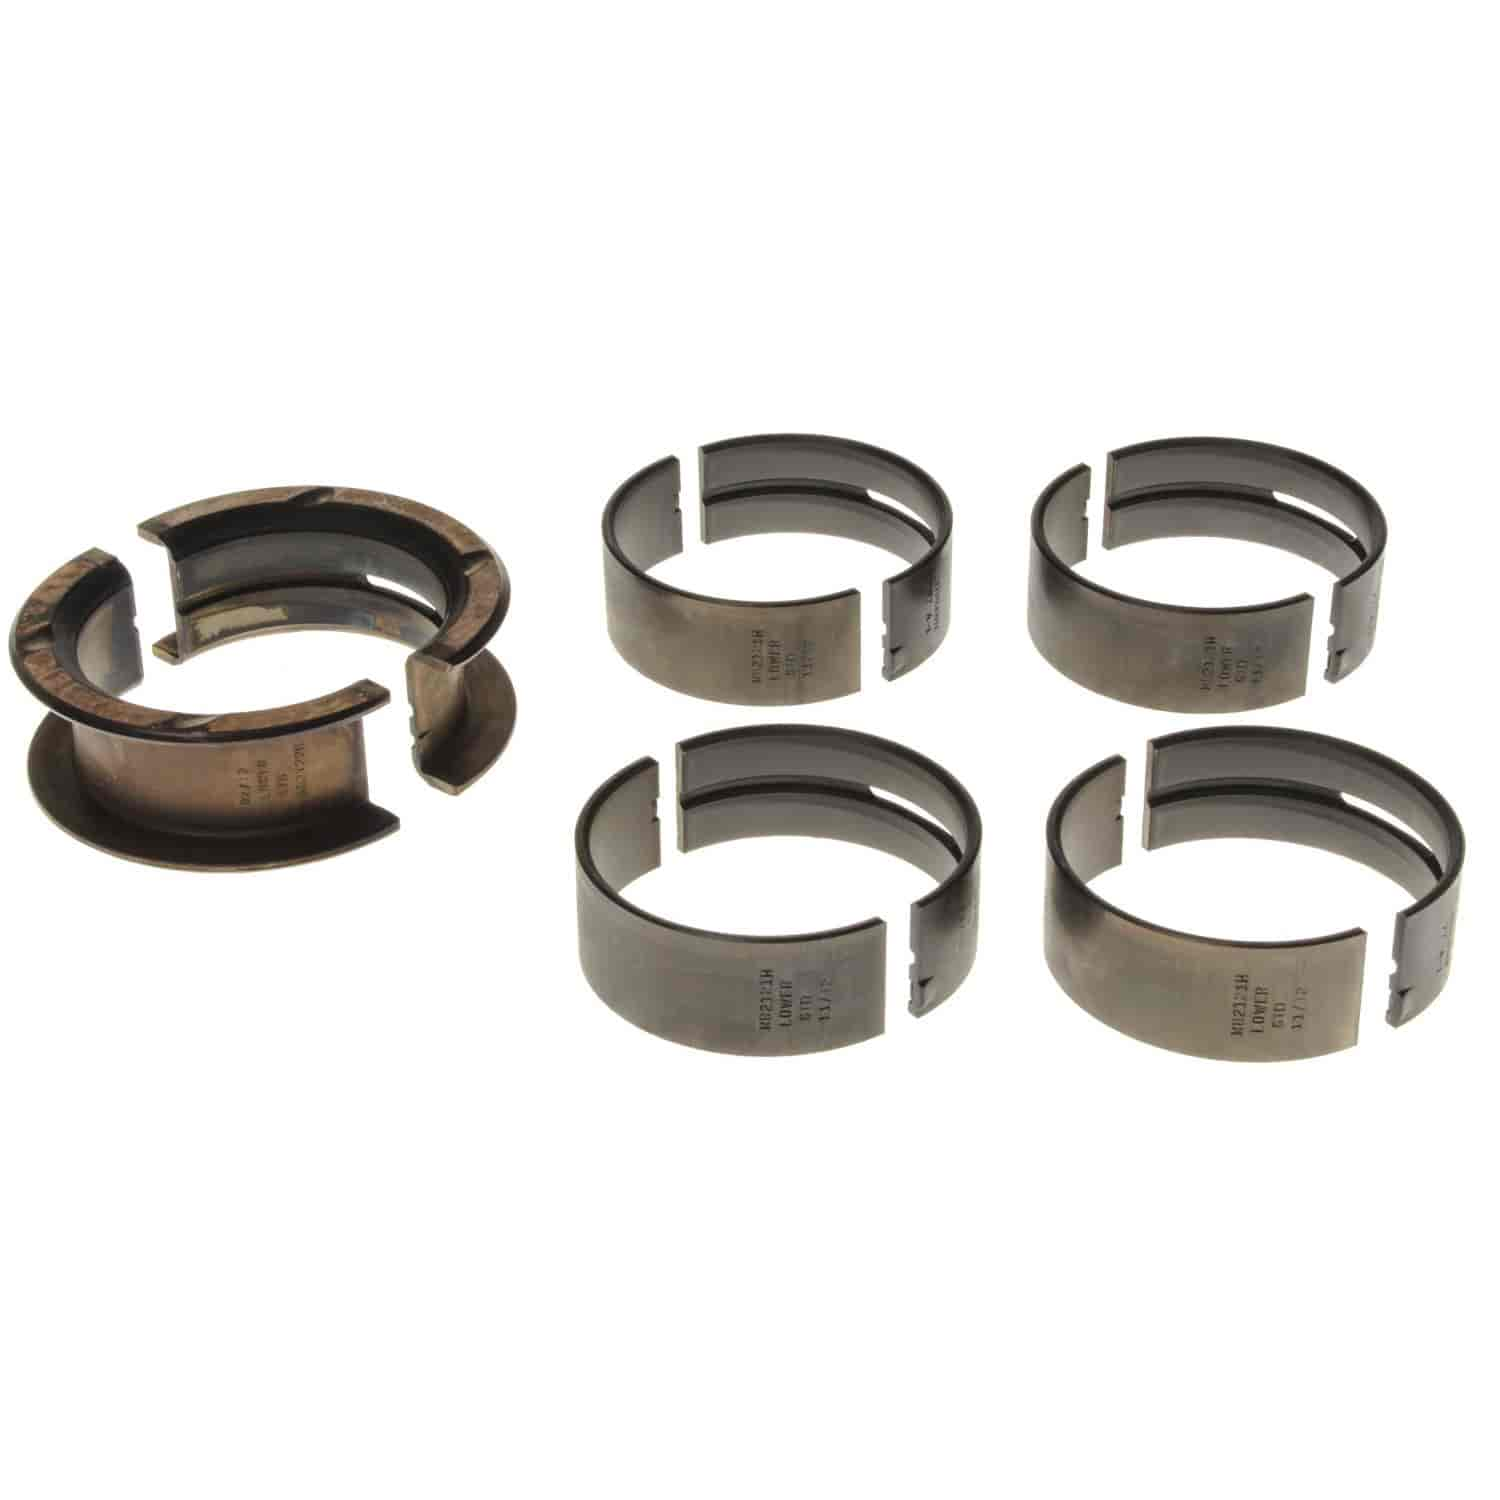 """.001/"""" Ford 289 302 5.0 Clevite Performance//Race H-series Main Bearing Set"""